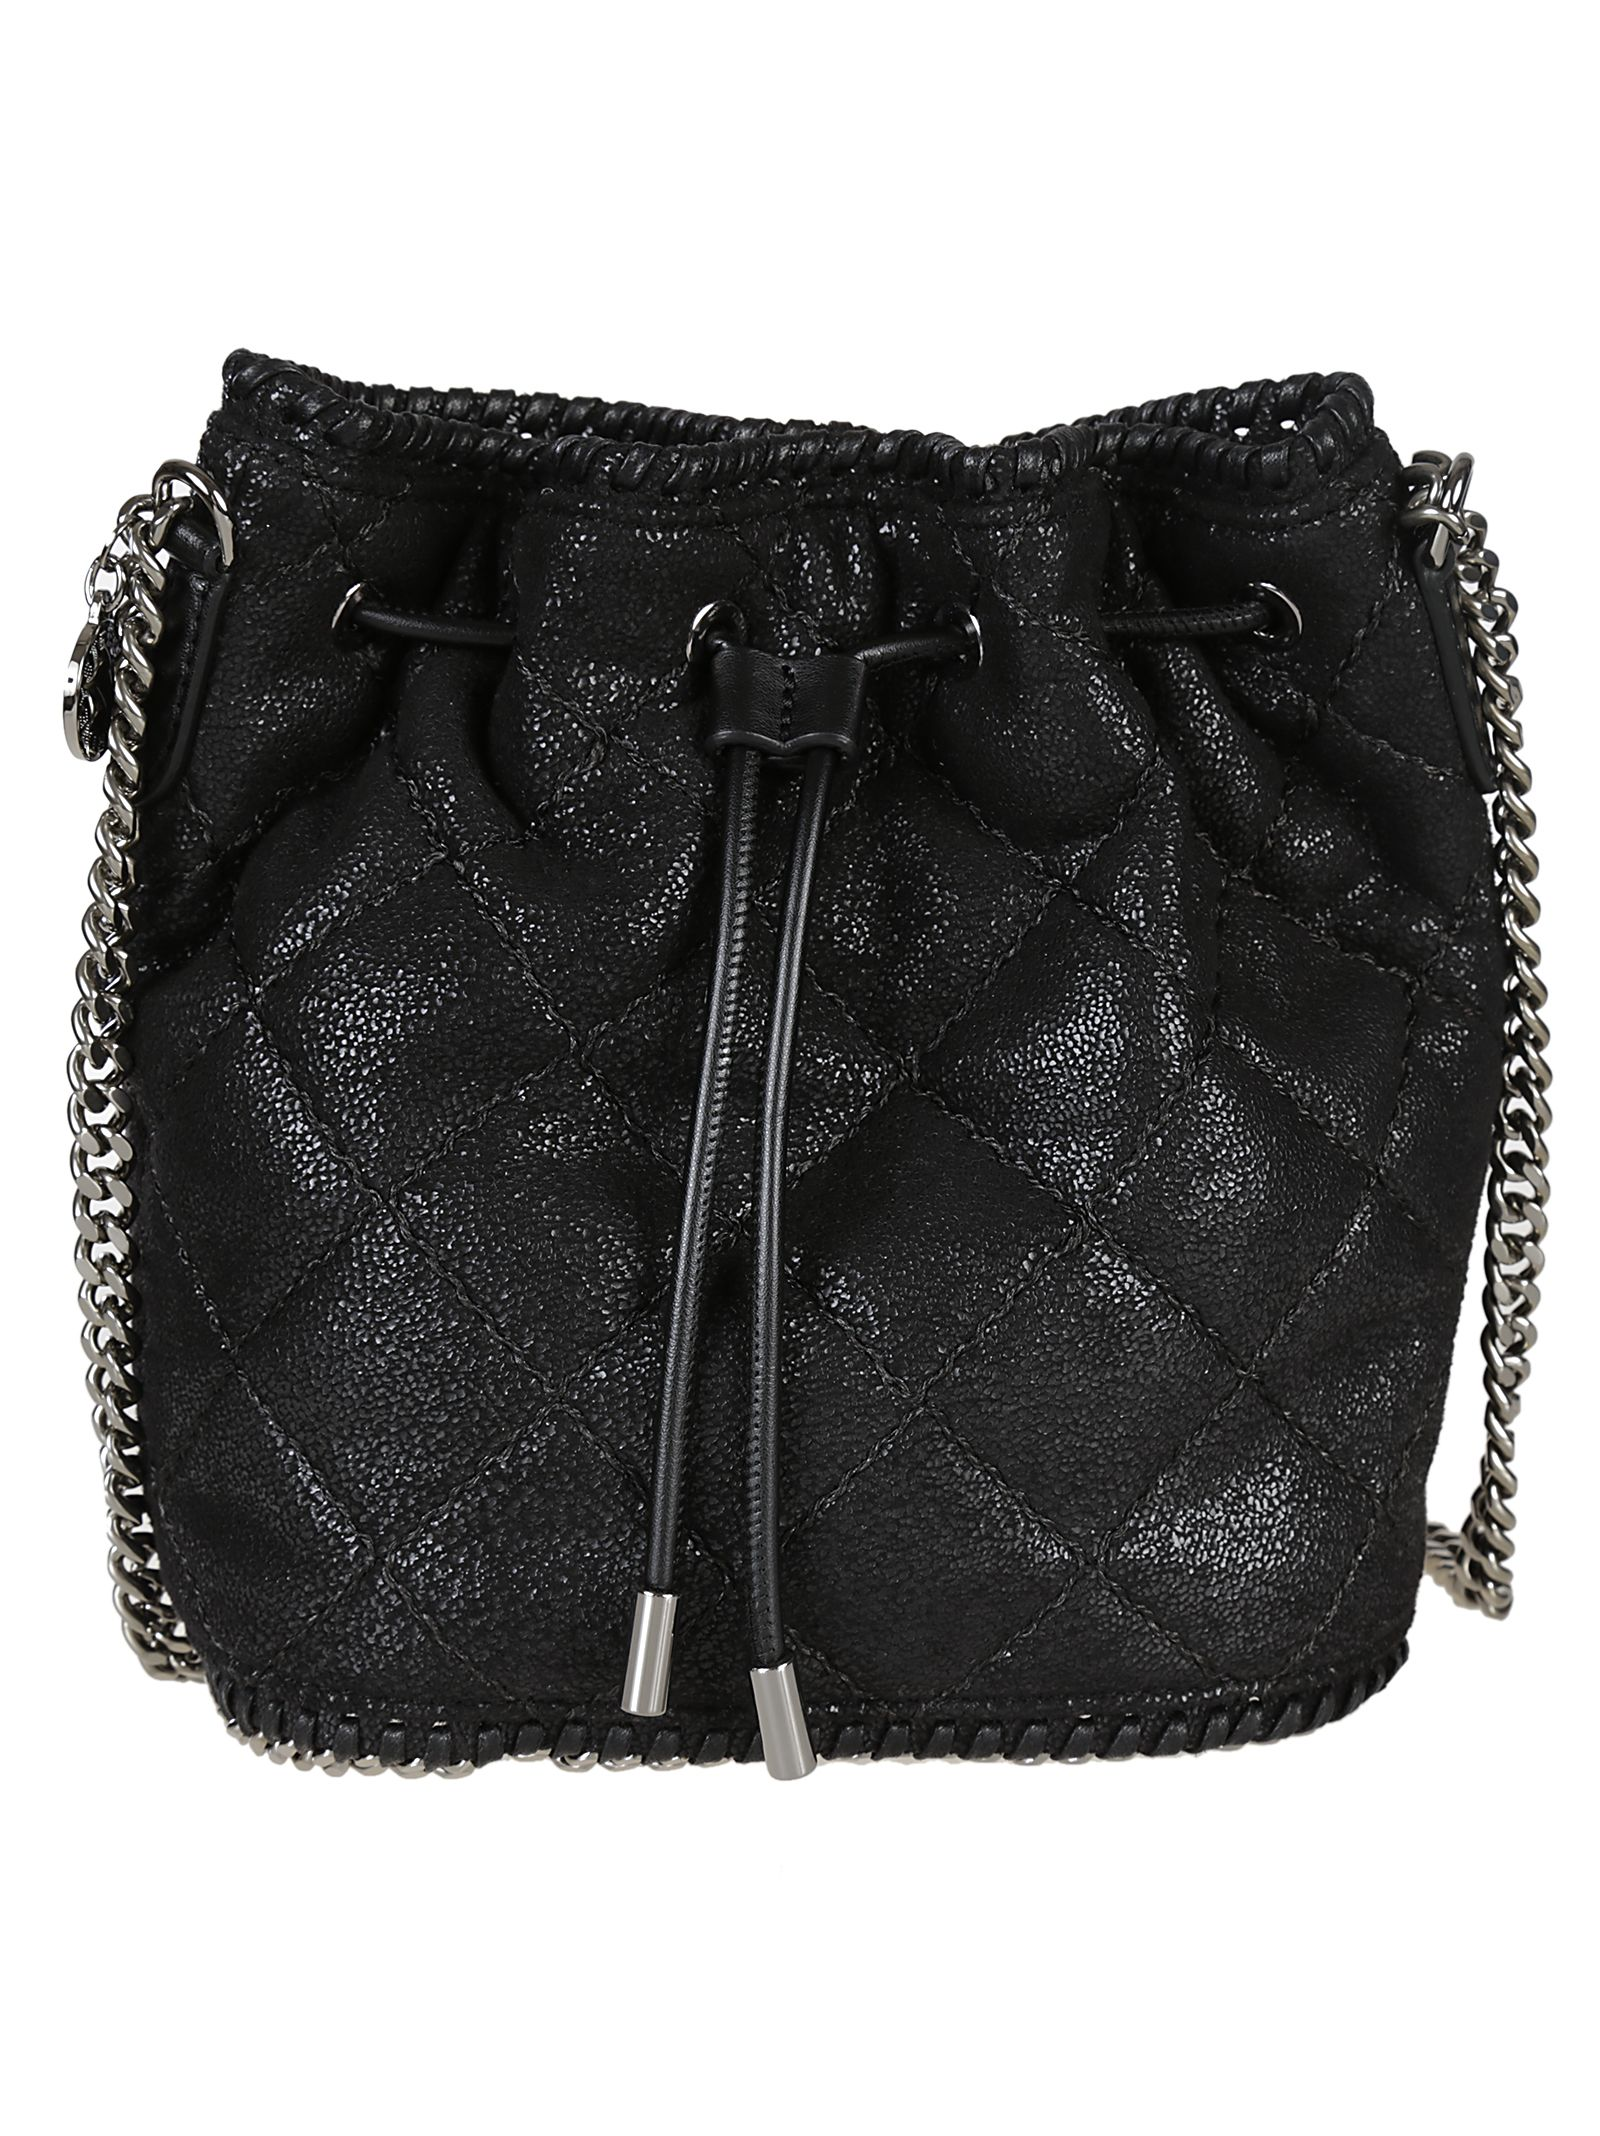 Stella McCartney Quilted Small Bucket Bag